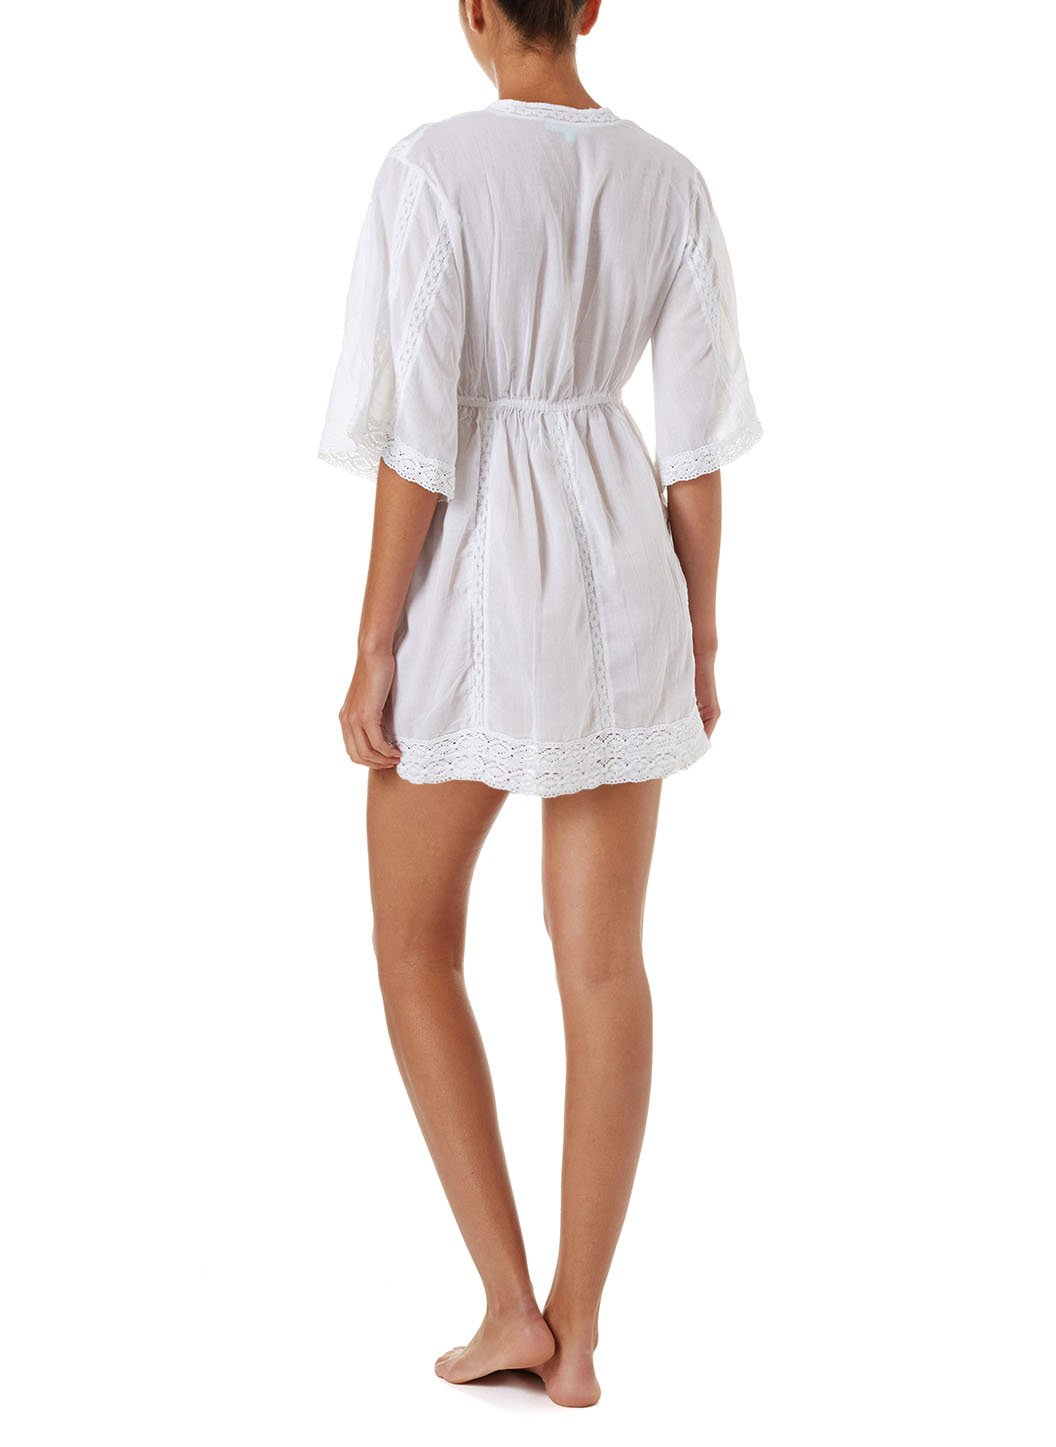 jade white vneck 34sleeve beach dress 2019 B